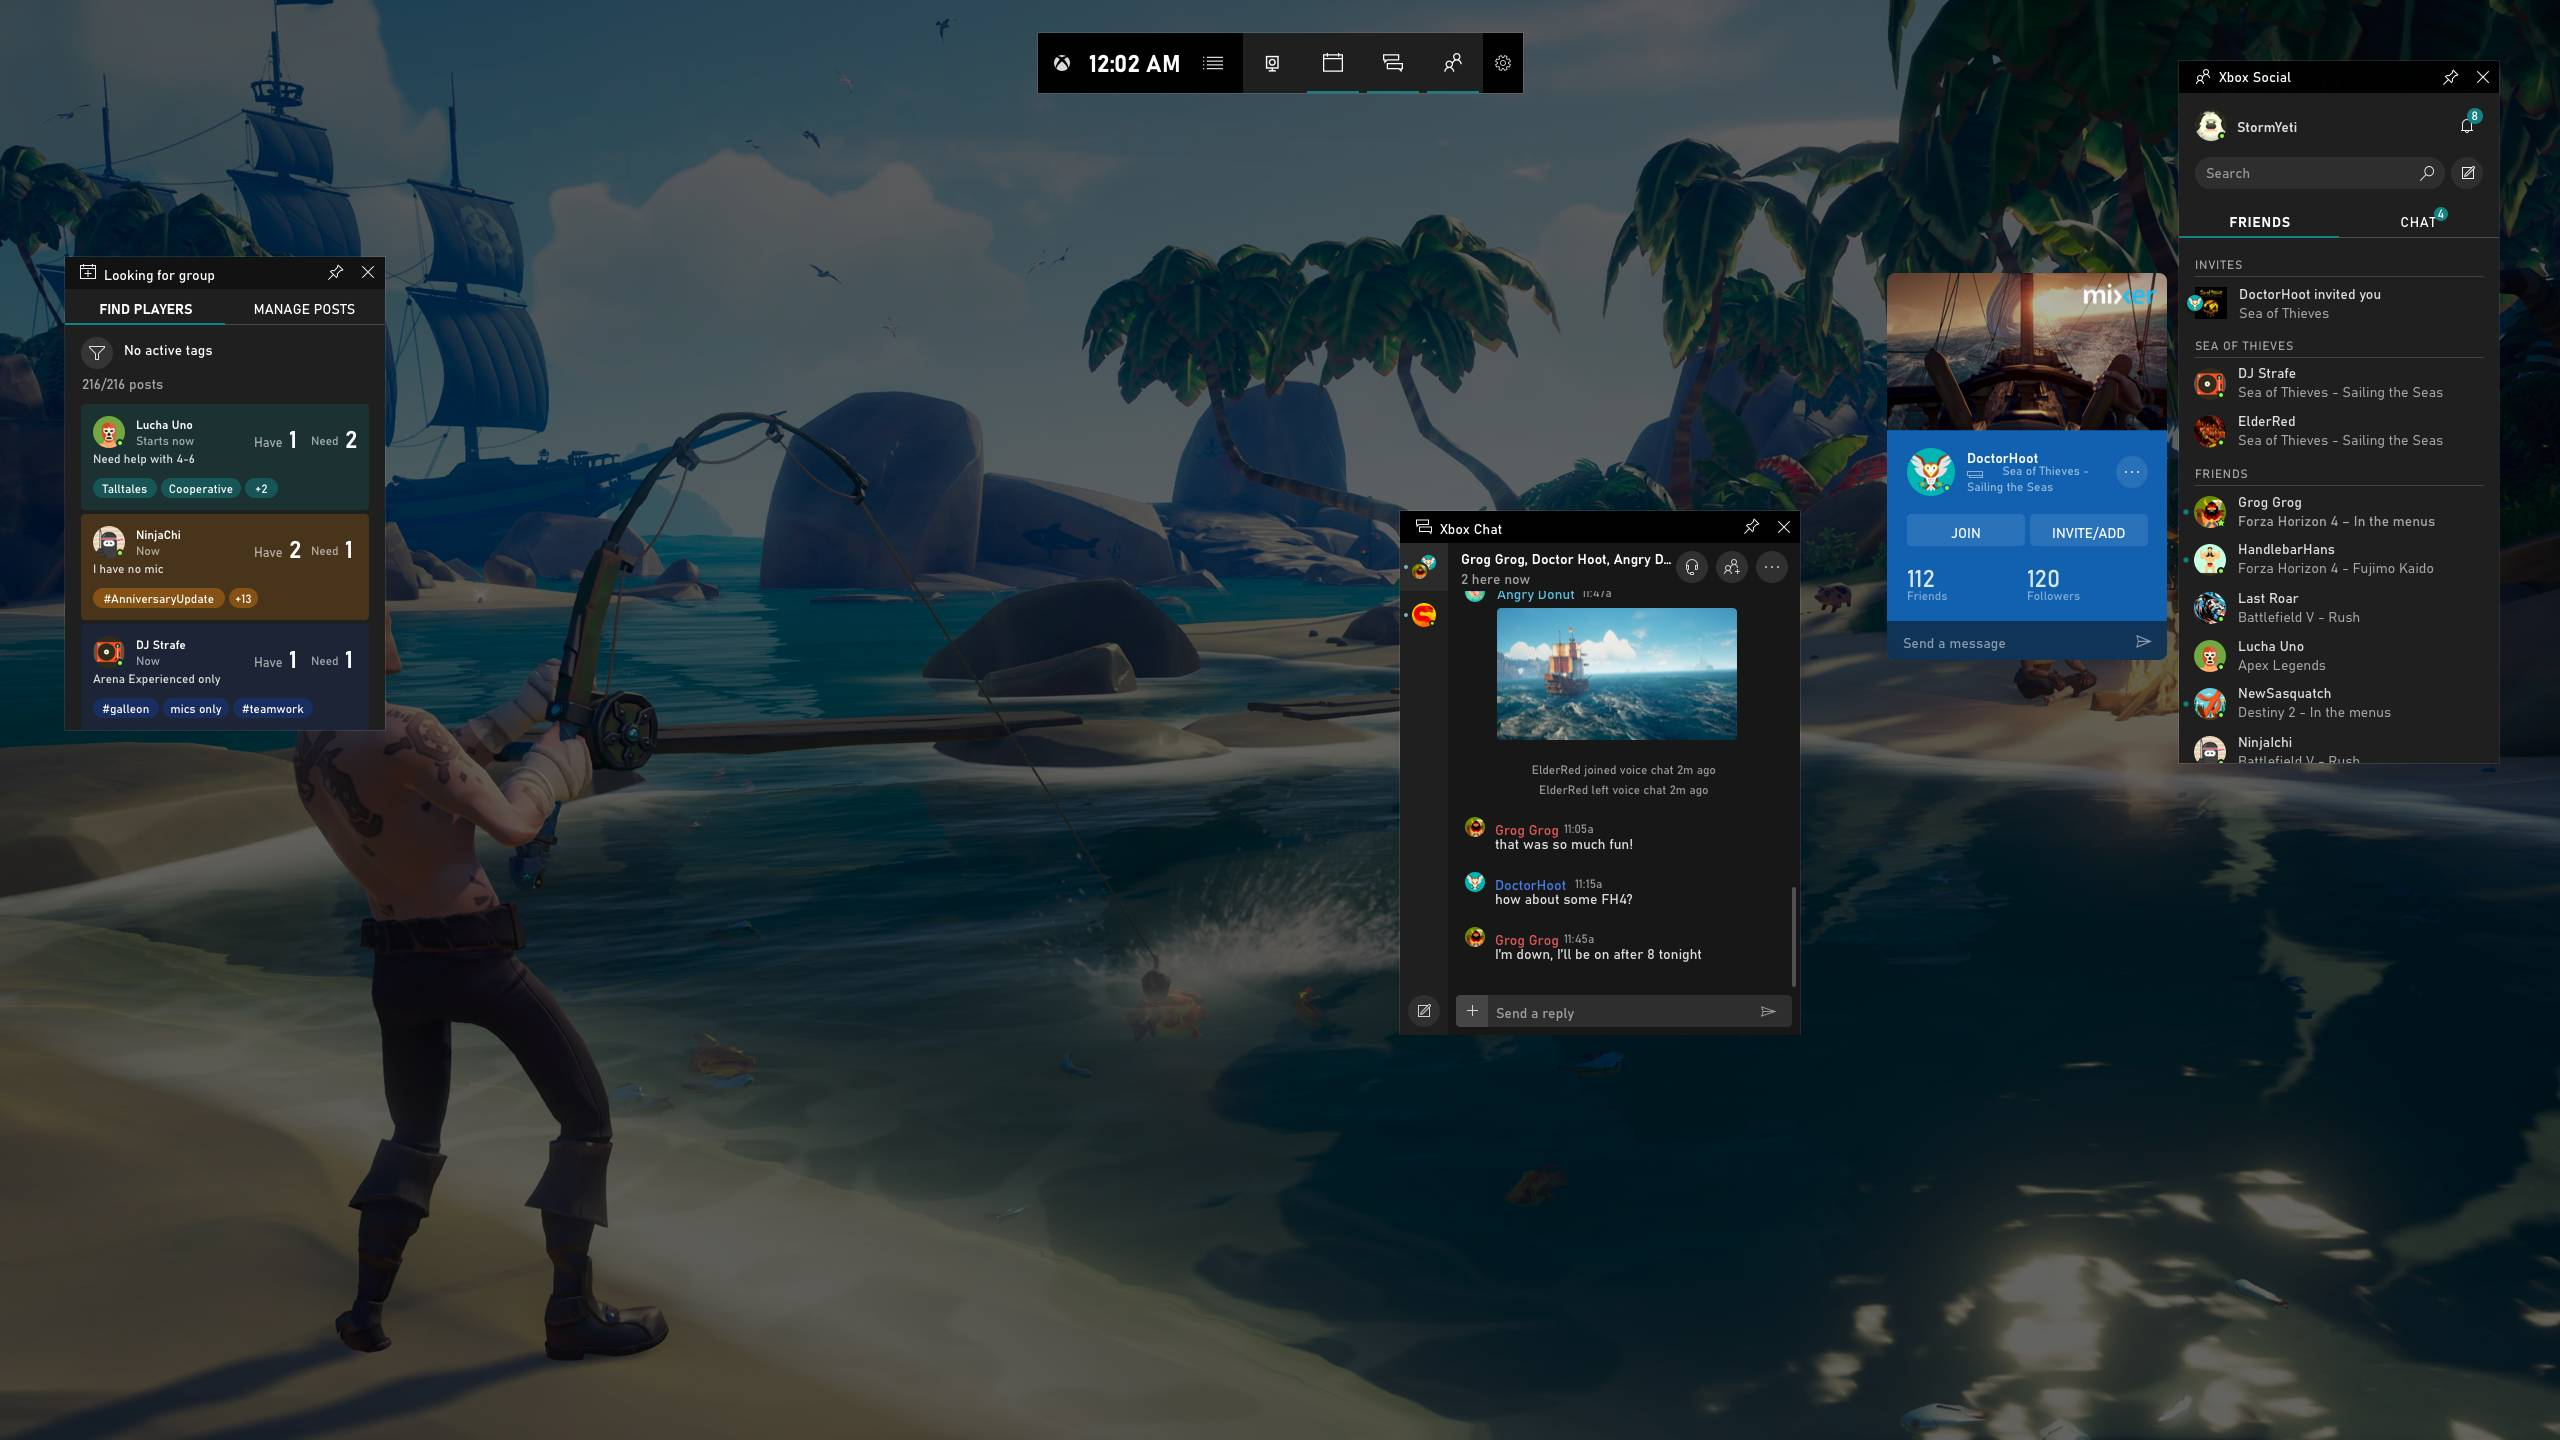 Buscar grupo y chat en la Barra de Juego de Xbox en Windows 10 PC